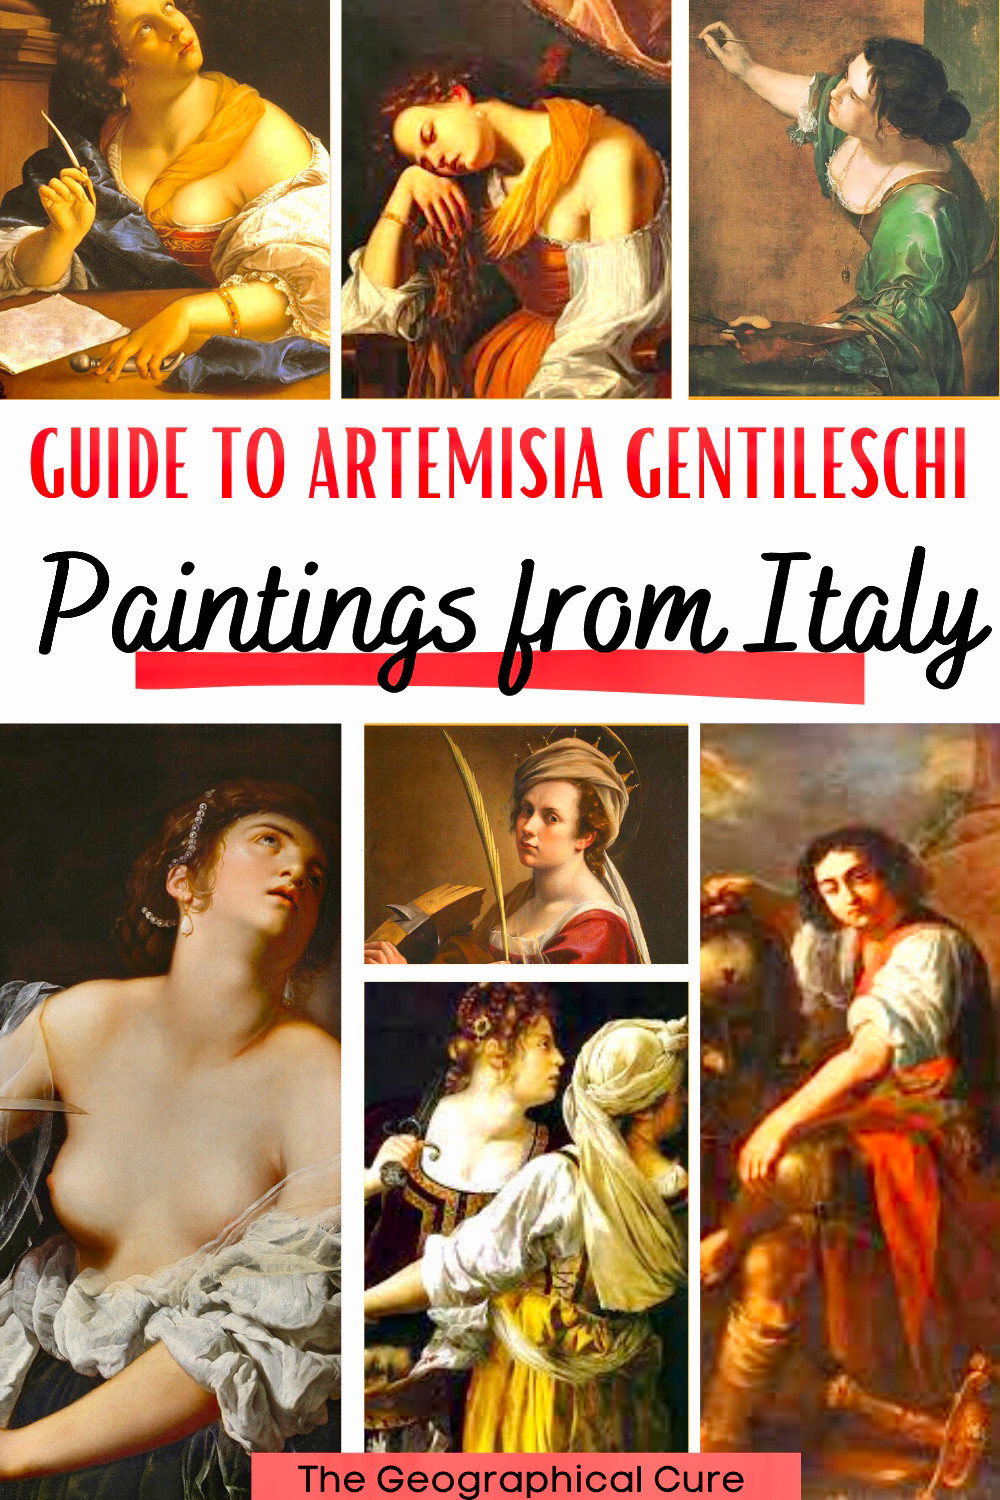 ultimate guide to the paintings of Artemisia Gentileschi, a star of Baroque painting